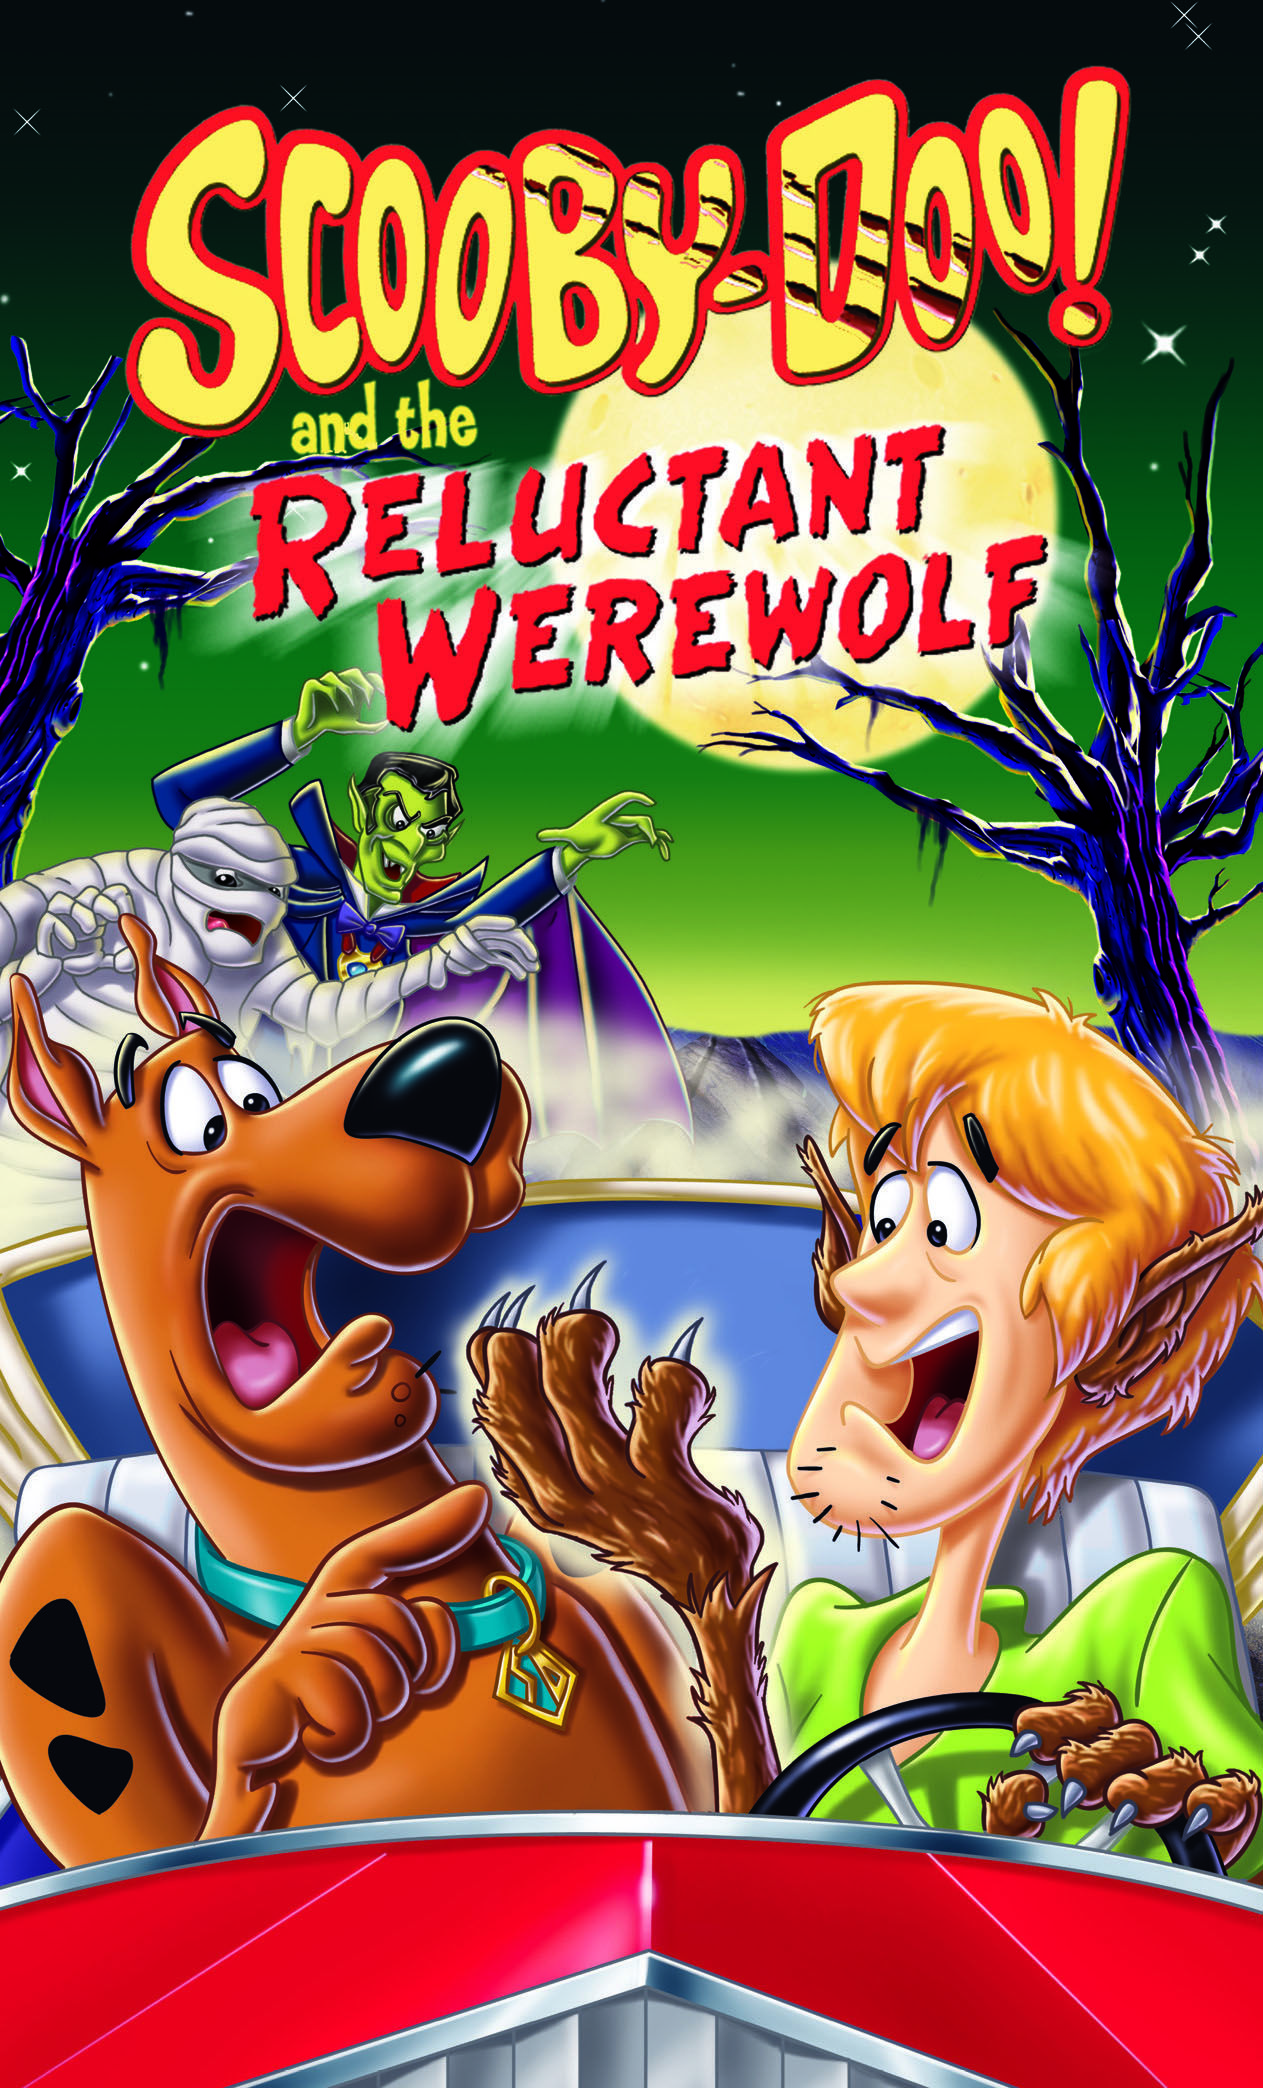 best werewolf movies - scooby doo and the reluctant werewolf